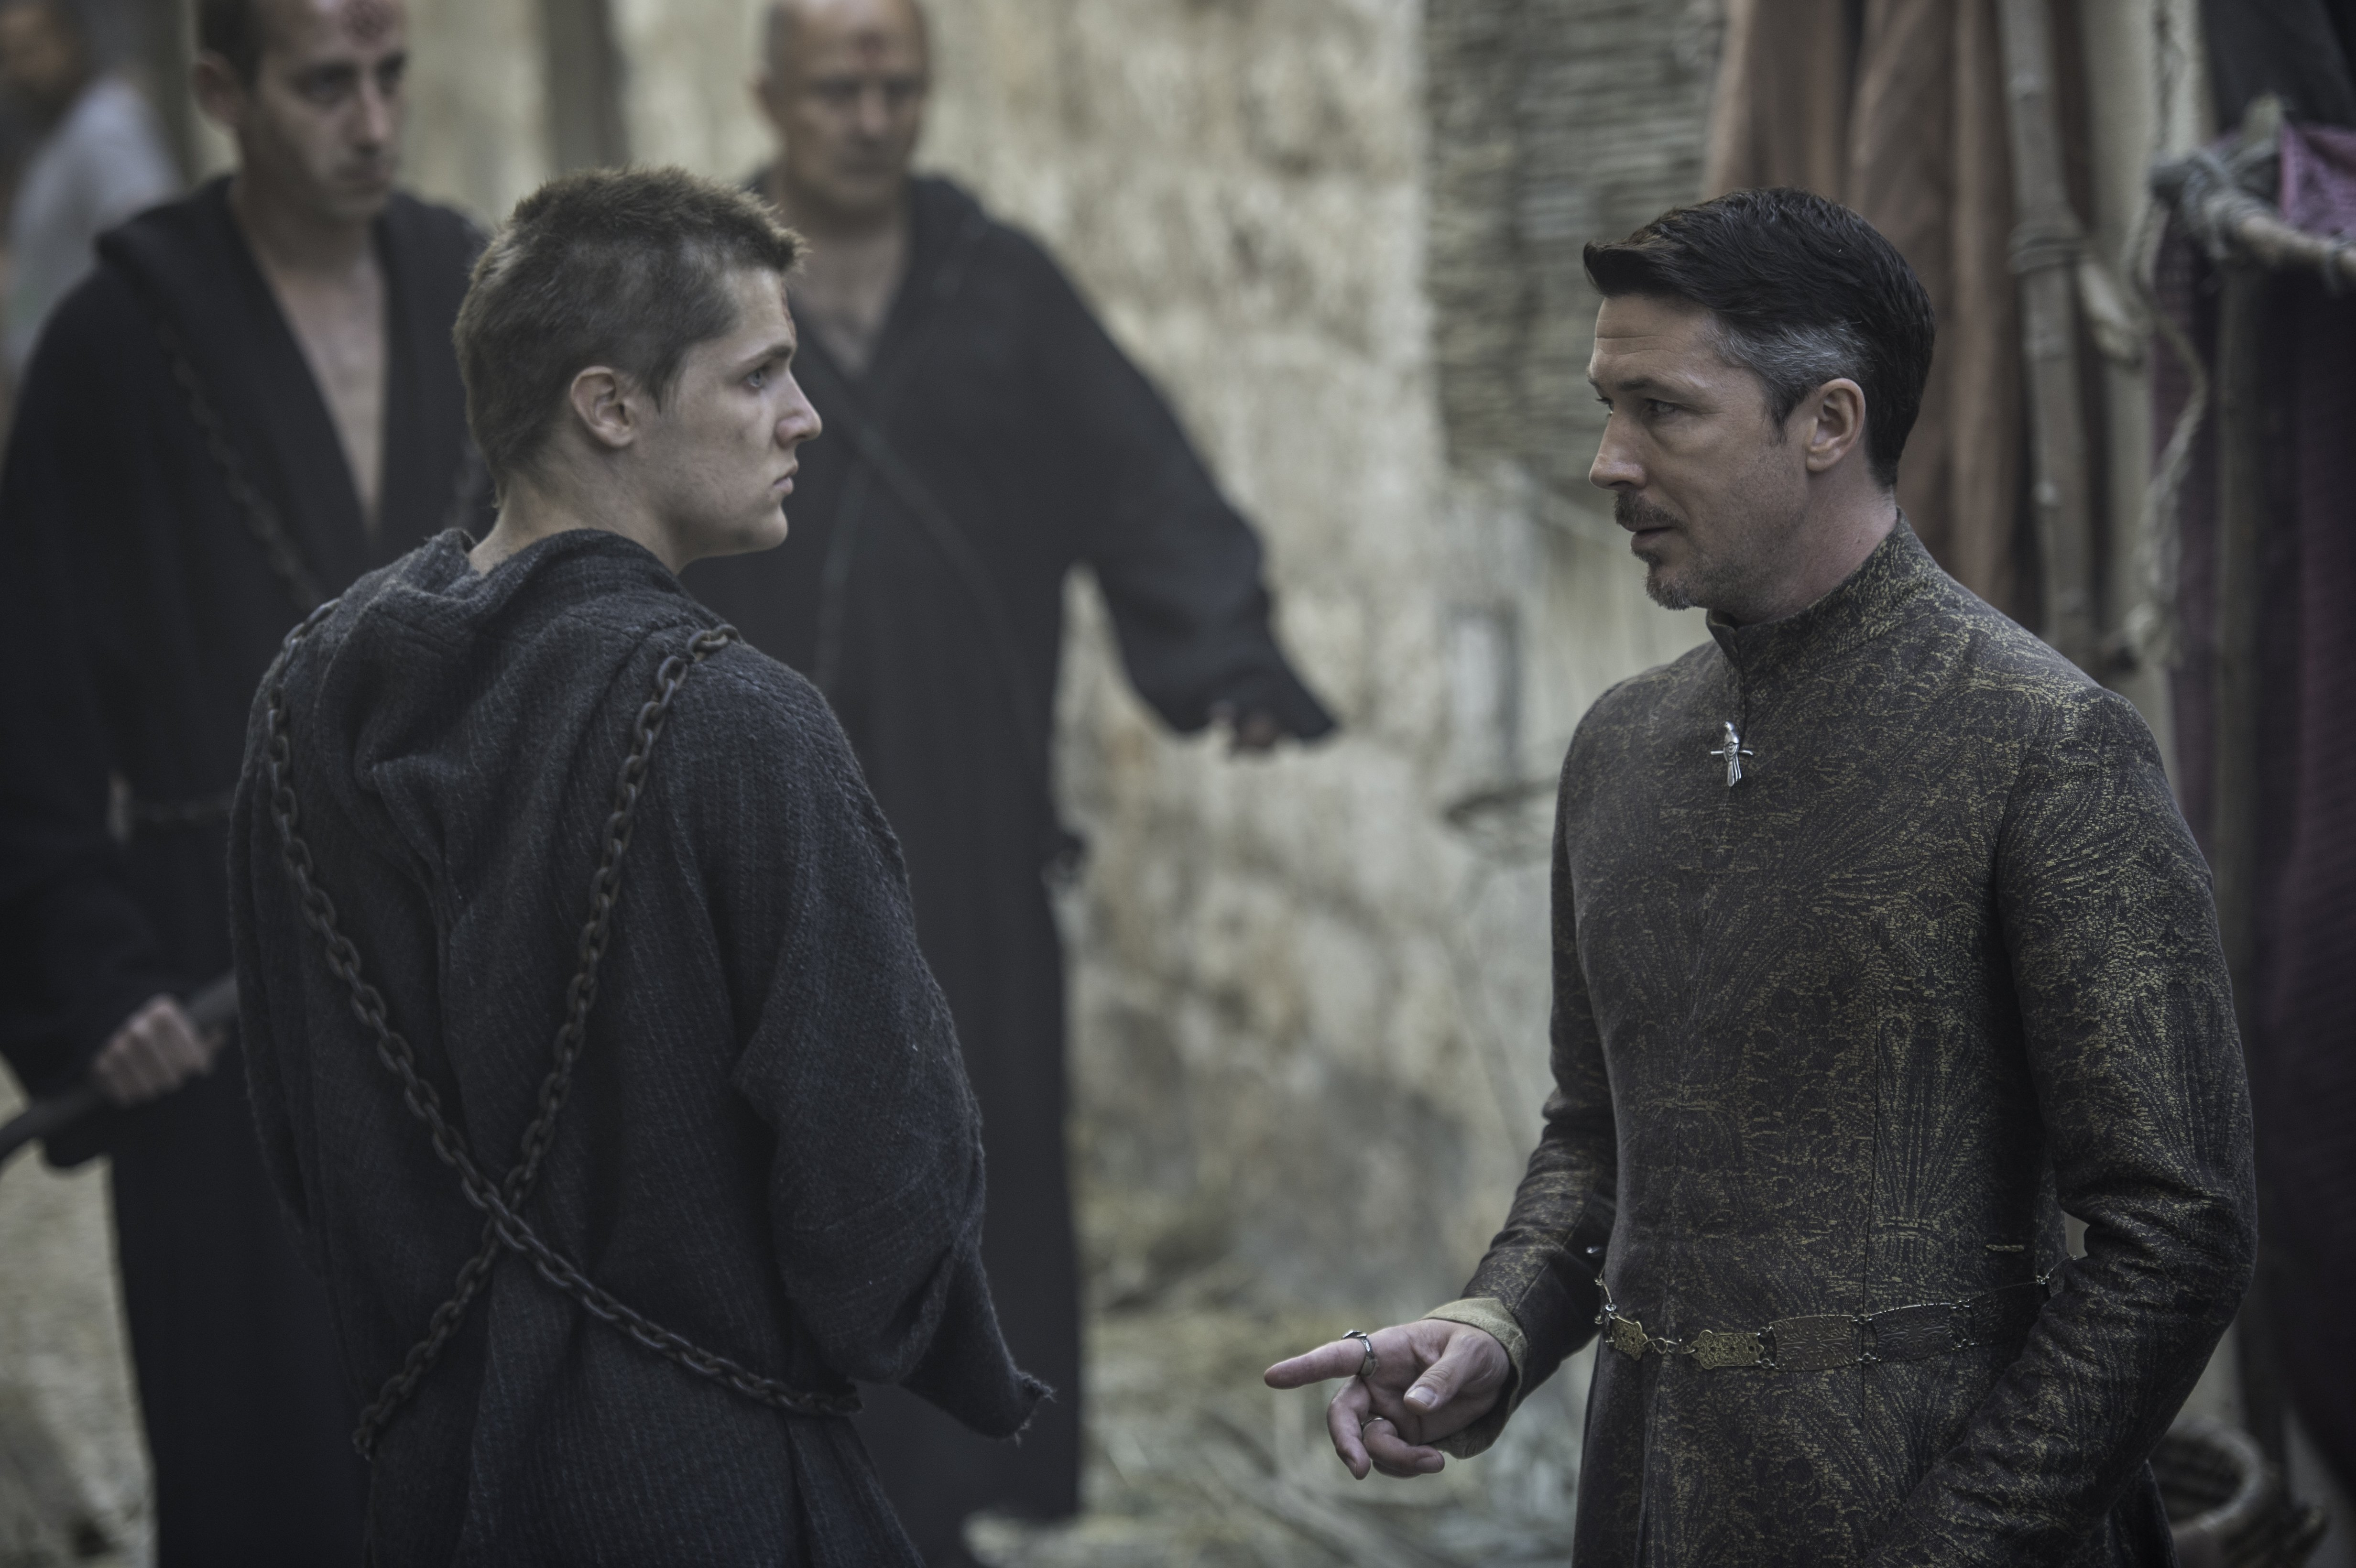 lancel and petyr